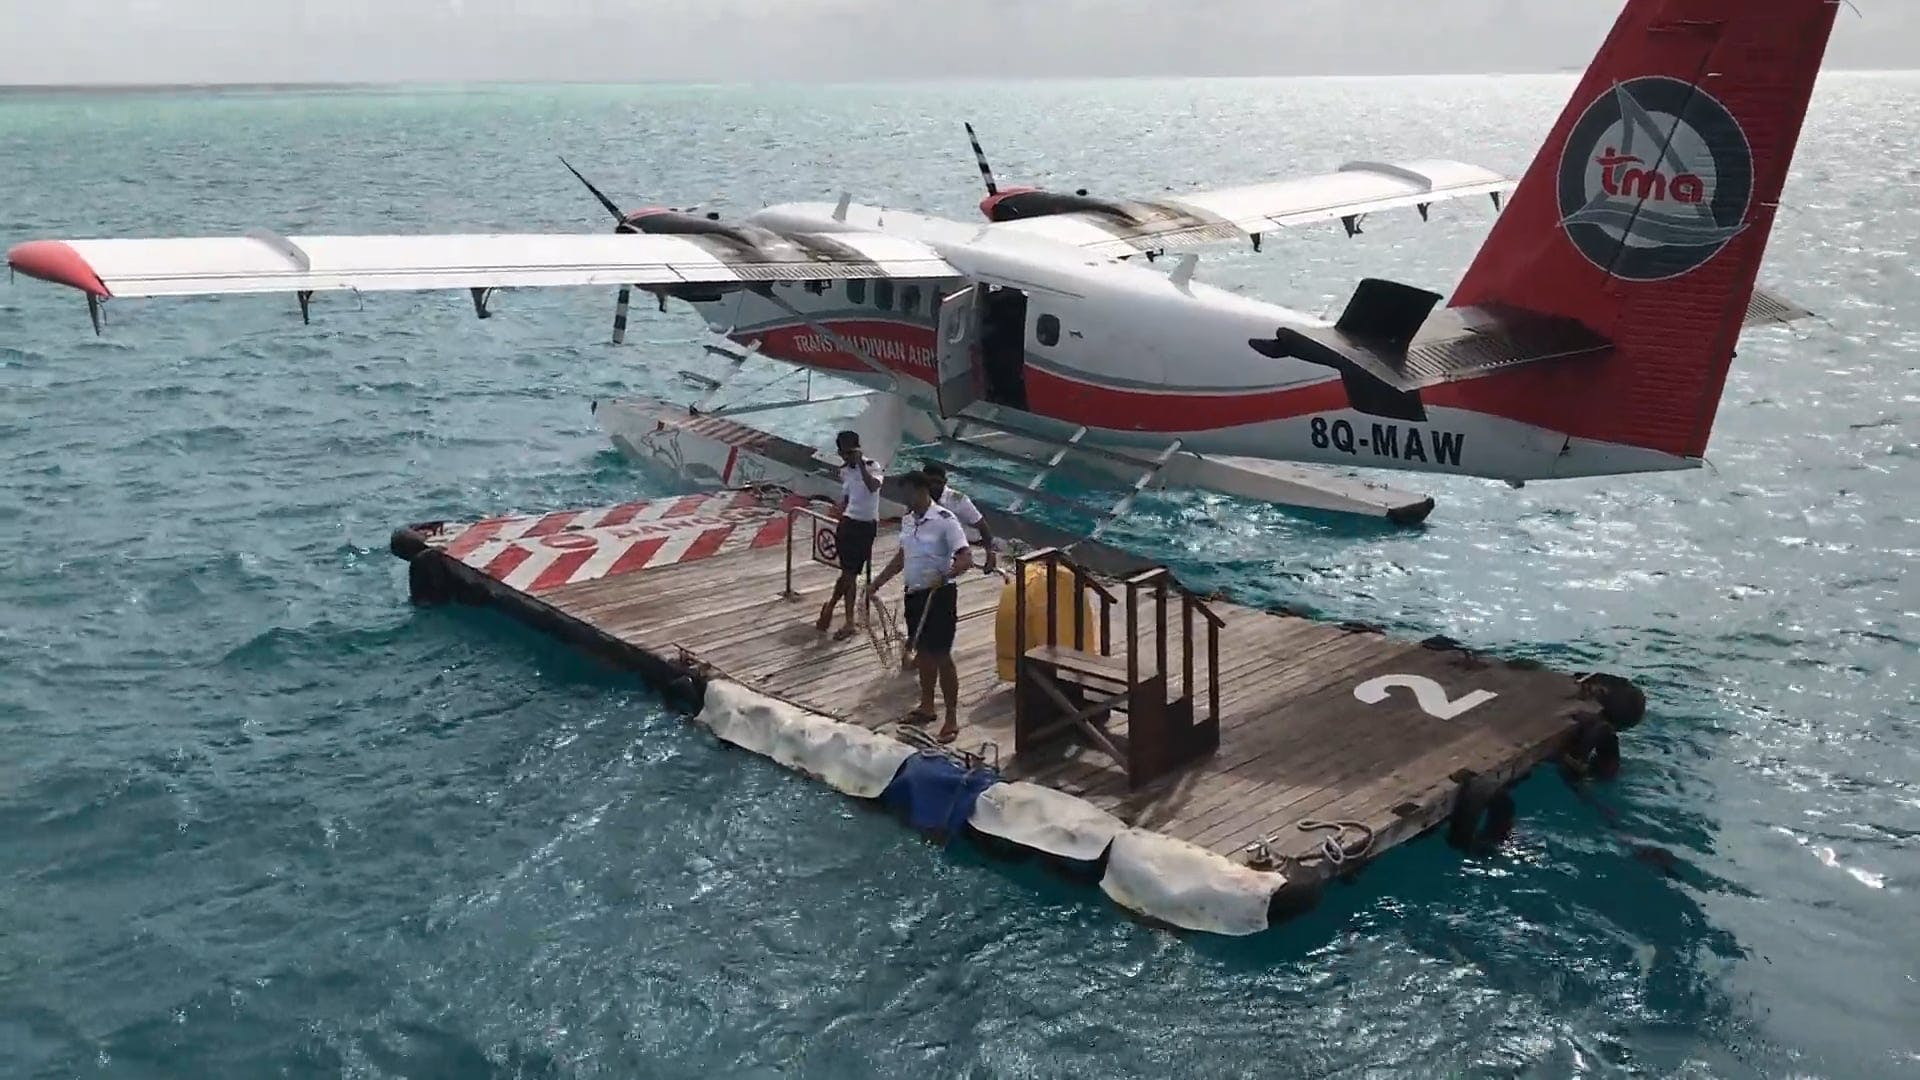 Airplane On Water With People Helping Others